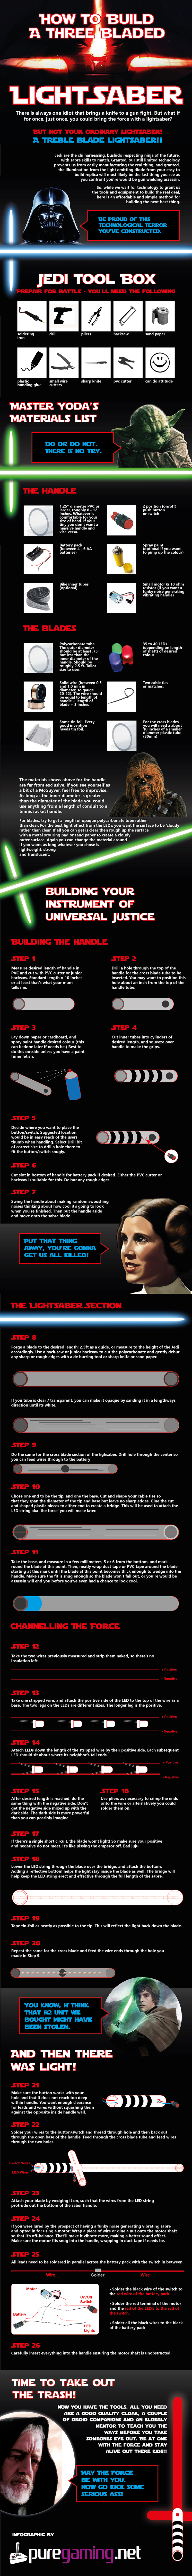 How to build a three bladed lightsaber http://geekxgirls.com/article.php?ID=4722